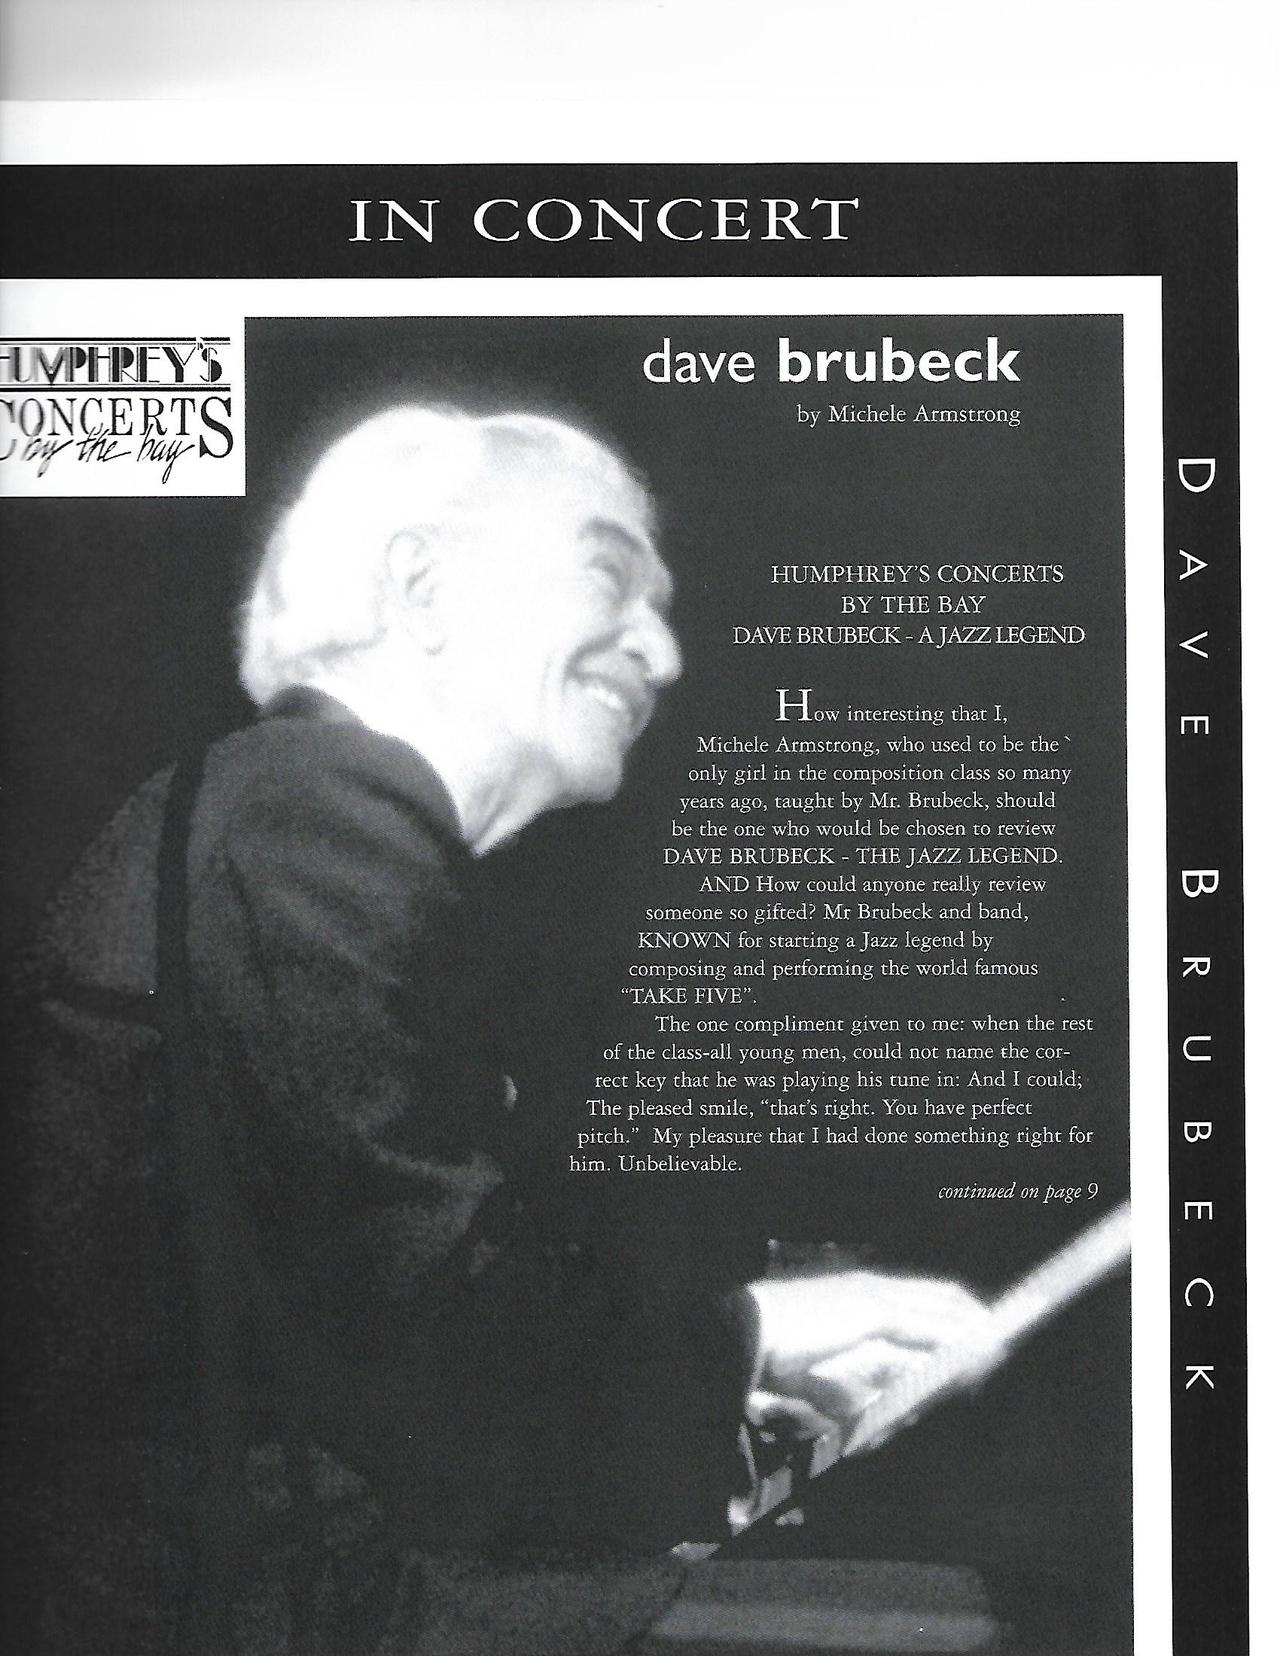 DAVE BRUBECK ARTICLE BY MICHELE ARMSTRONG  99.jpg